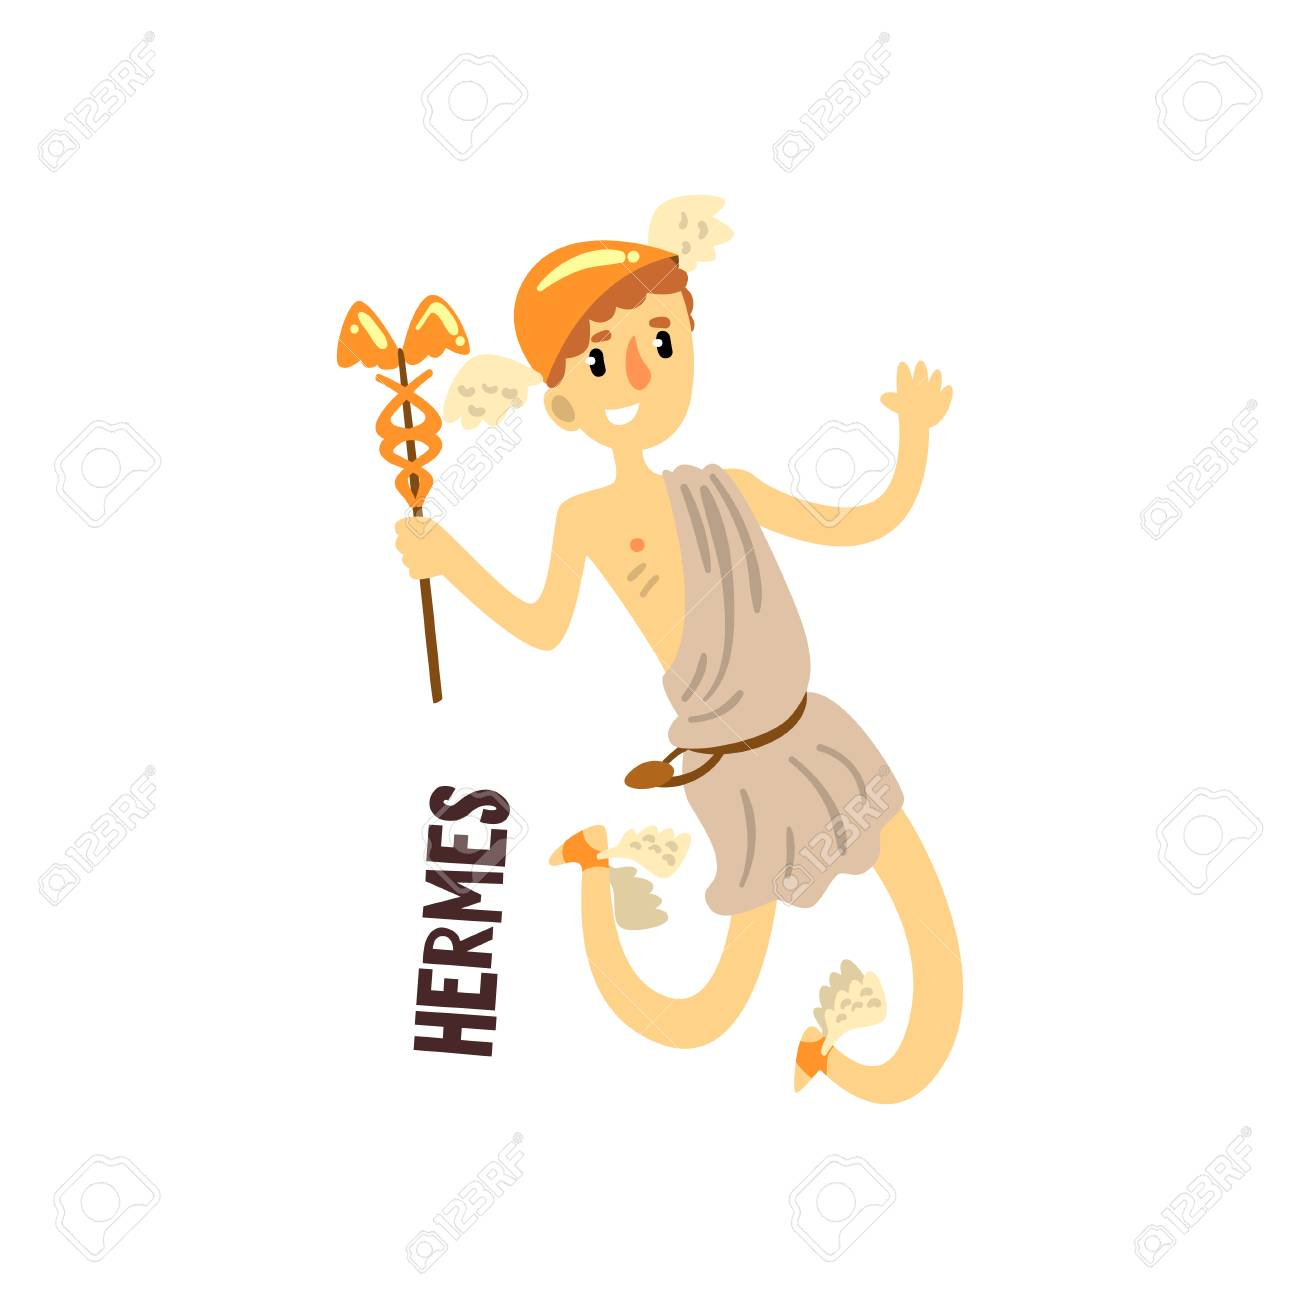 Hermes Olympian Greek God Ancient Greece Mythology Character